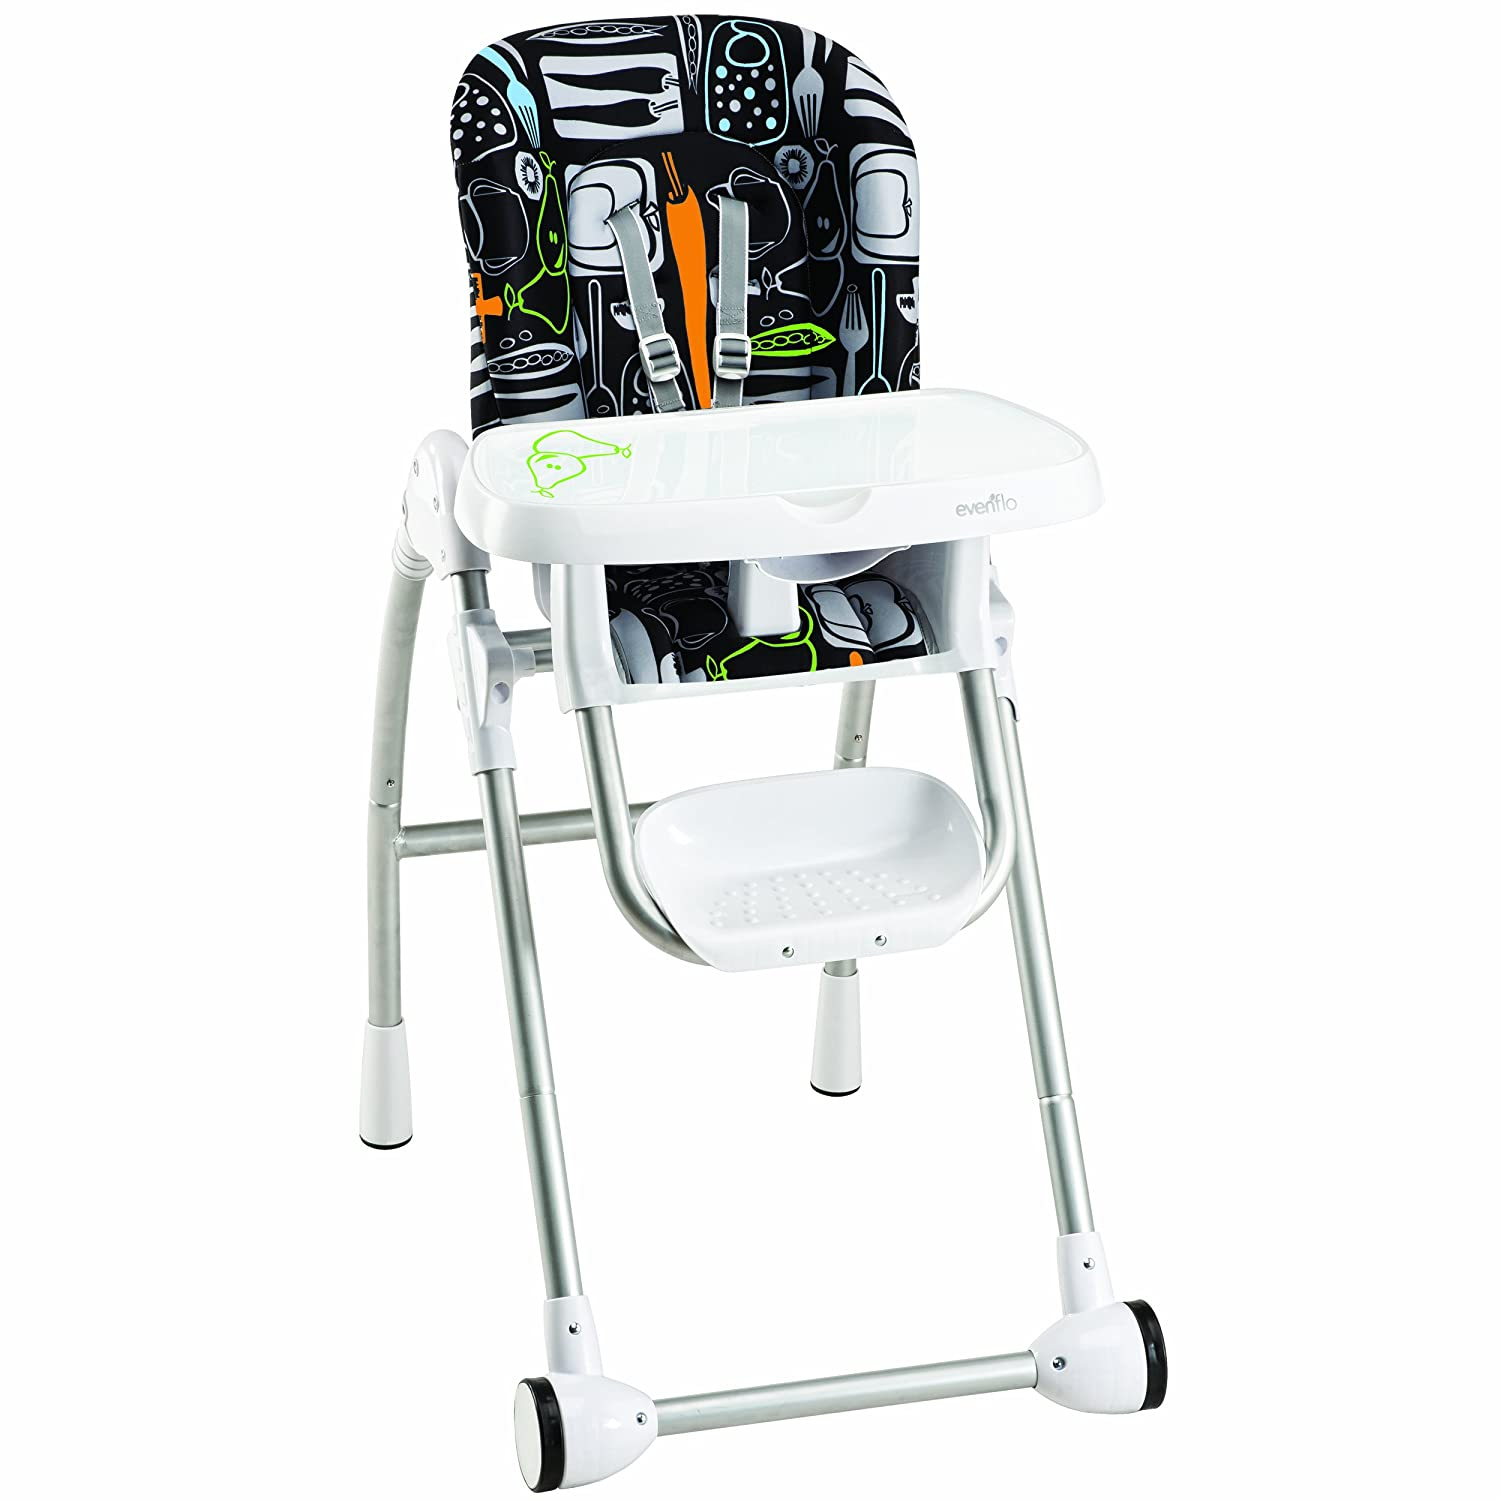 Top Rated High Chairs For Babies 2015